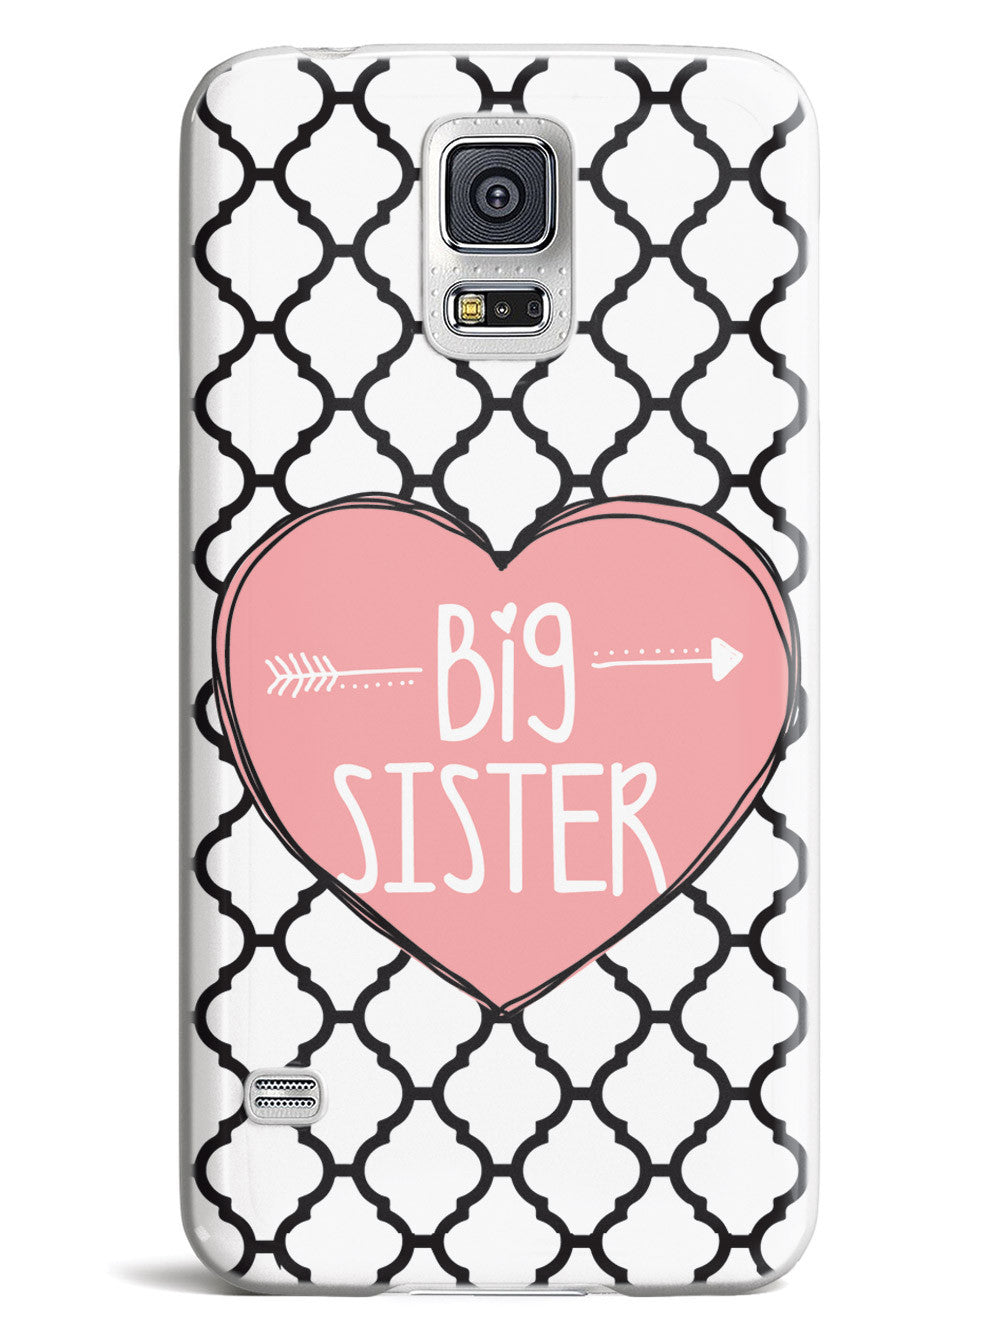 Sisterly Love - Big Sister - Moroccan Case